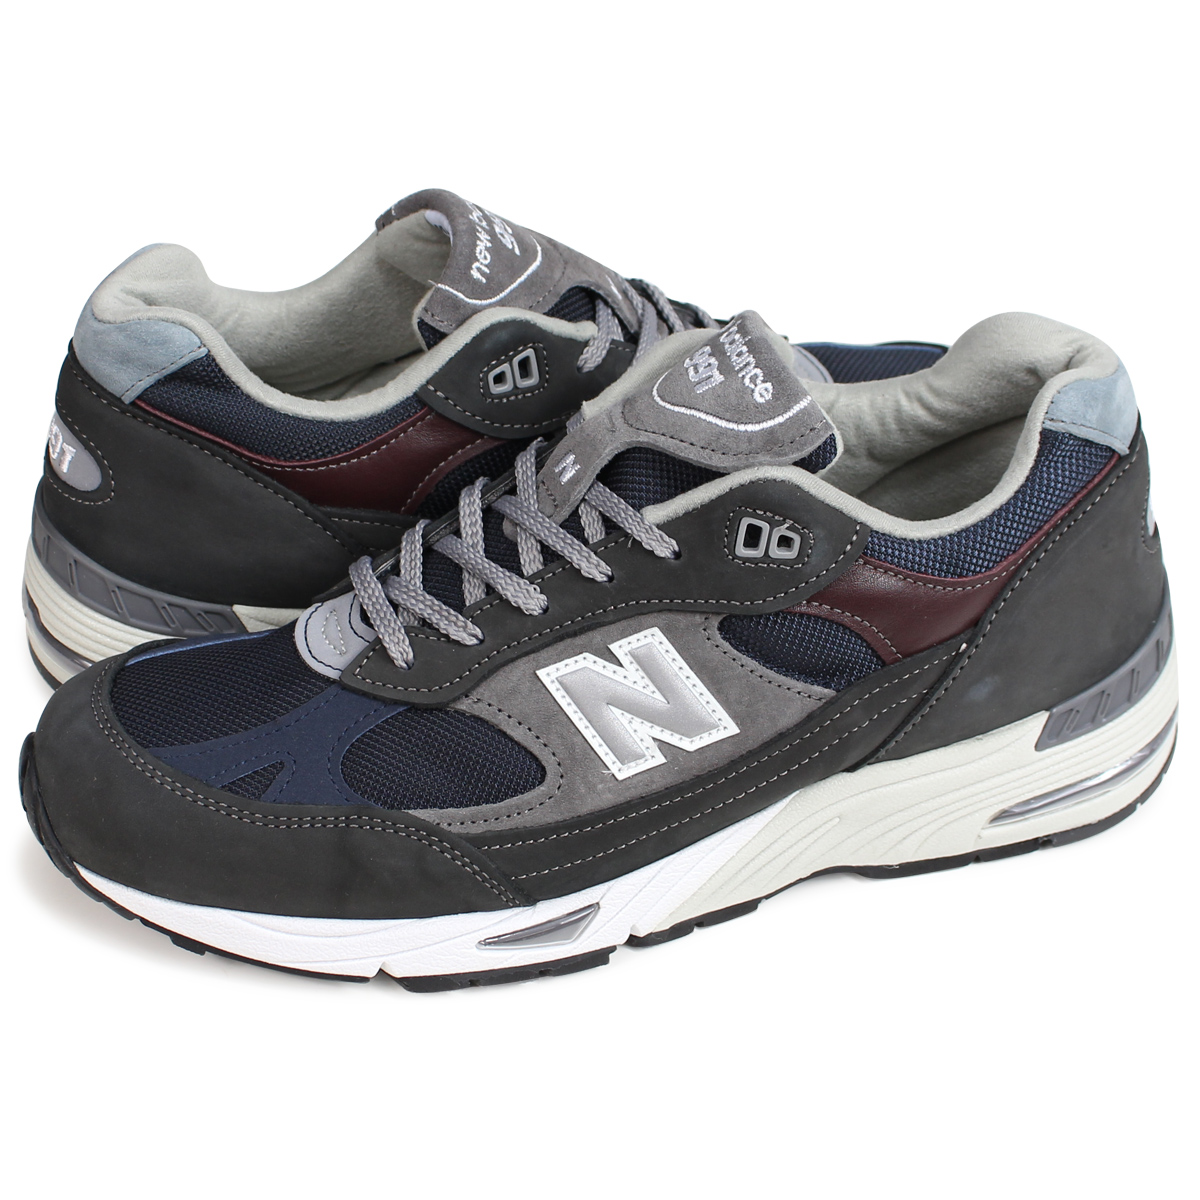 new balance M991GNN MADE IN UK New Balance 991 men's sneakers D Wise gray